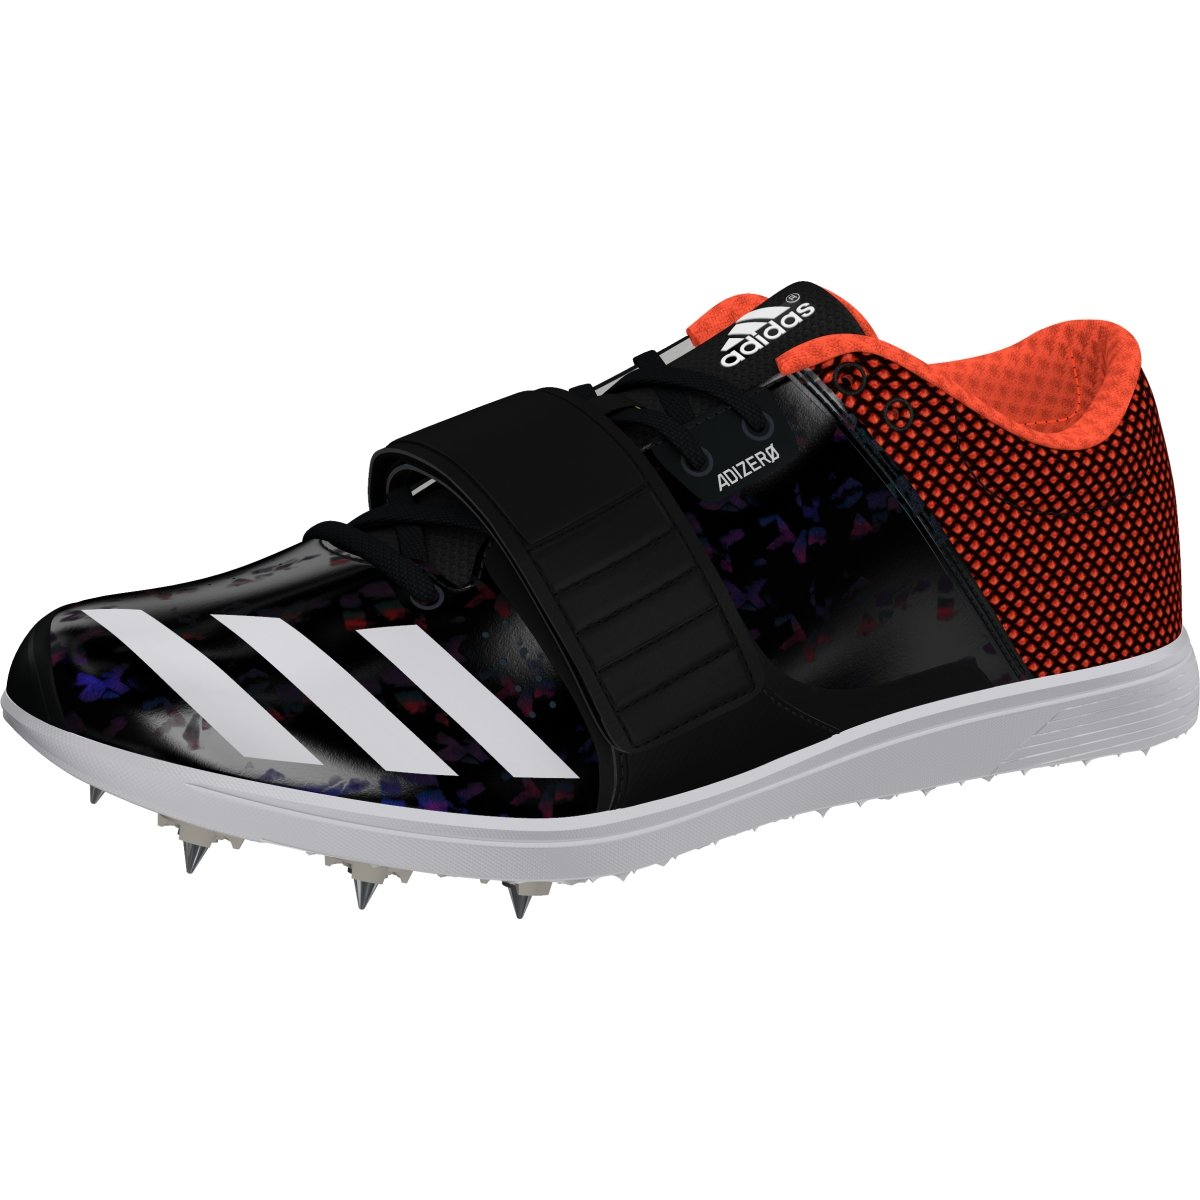 adidas Adizero Tj/Pv Running Shoe, Core Black, FTWR White, Orange, 10.5 M US